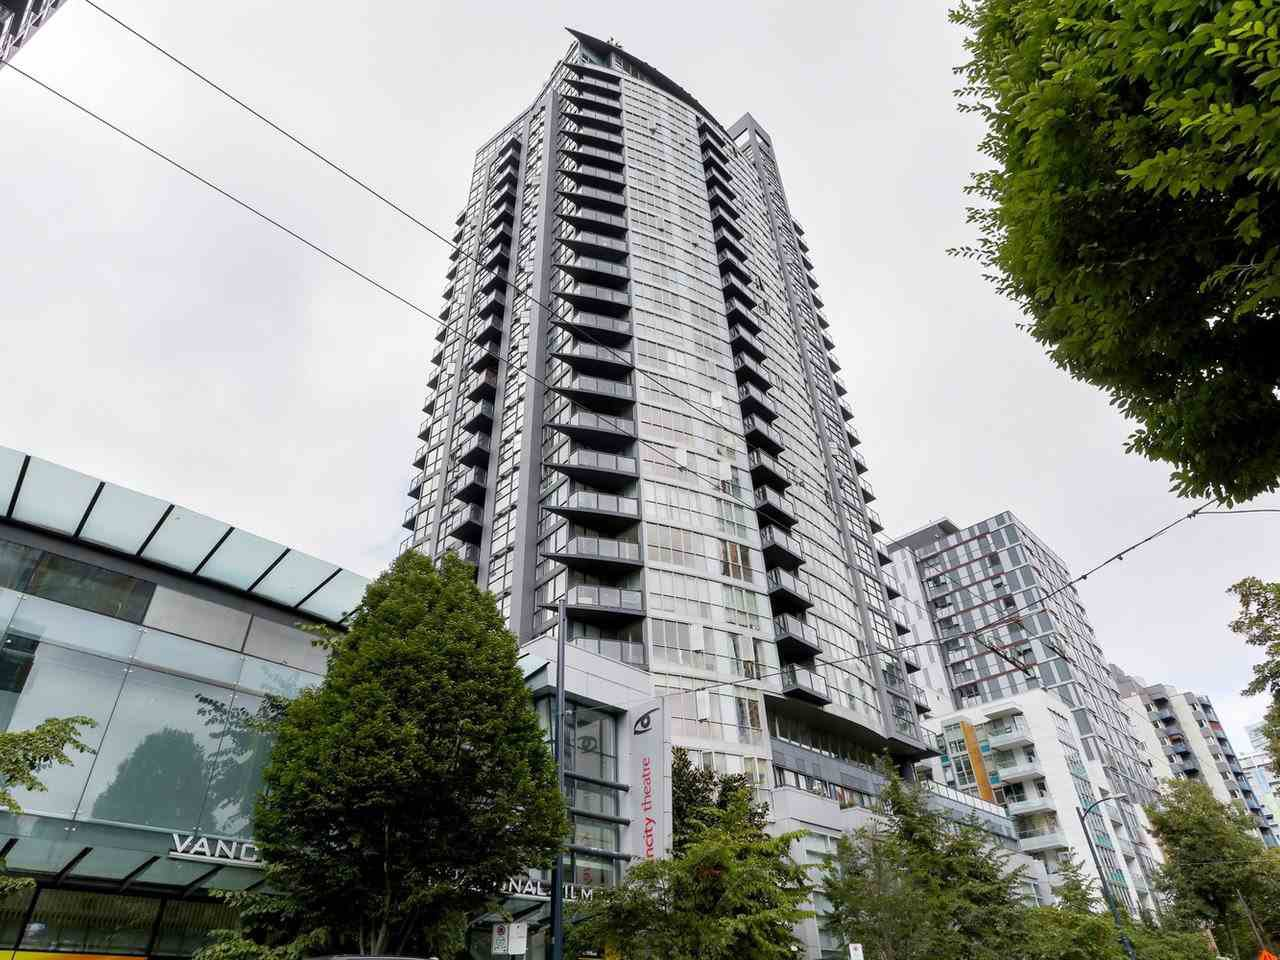 Main Photo: 1202 1155 SEYMOUR Street in Vancouver: Downtown VW Condo for sale (Vancouver West)  : MLS®# R2498131